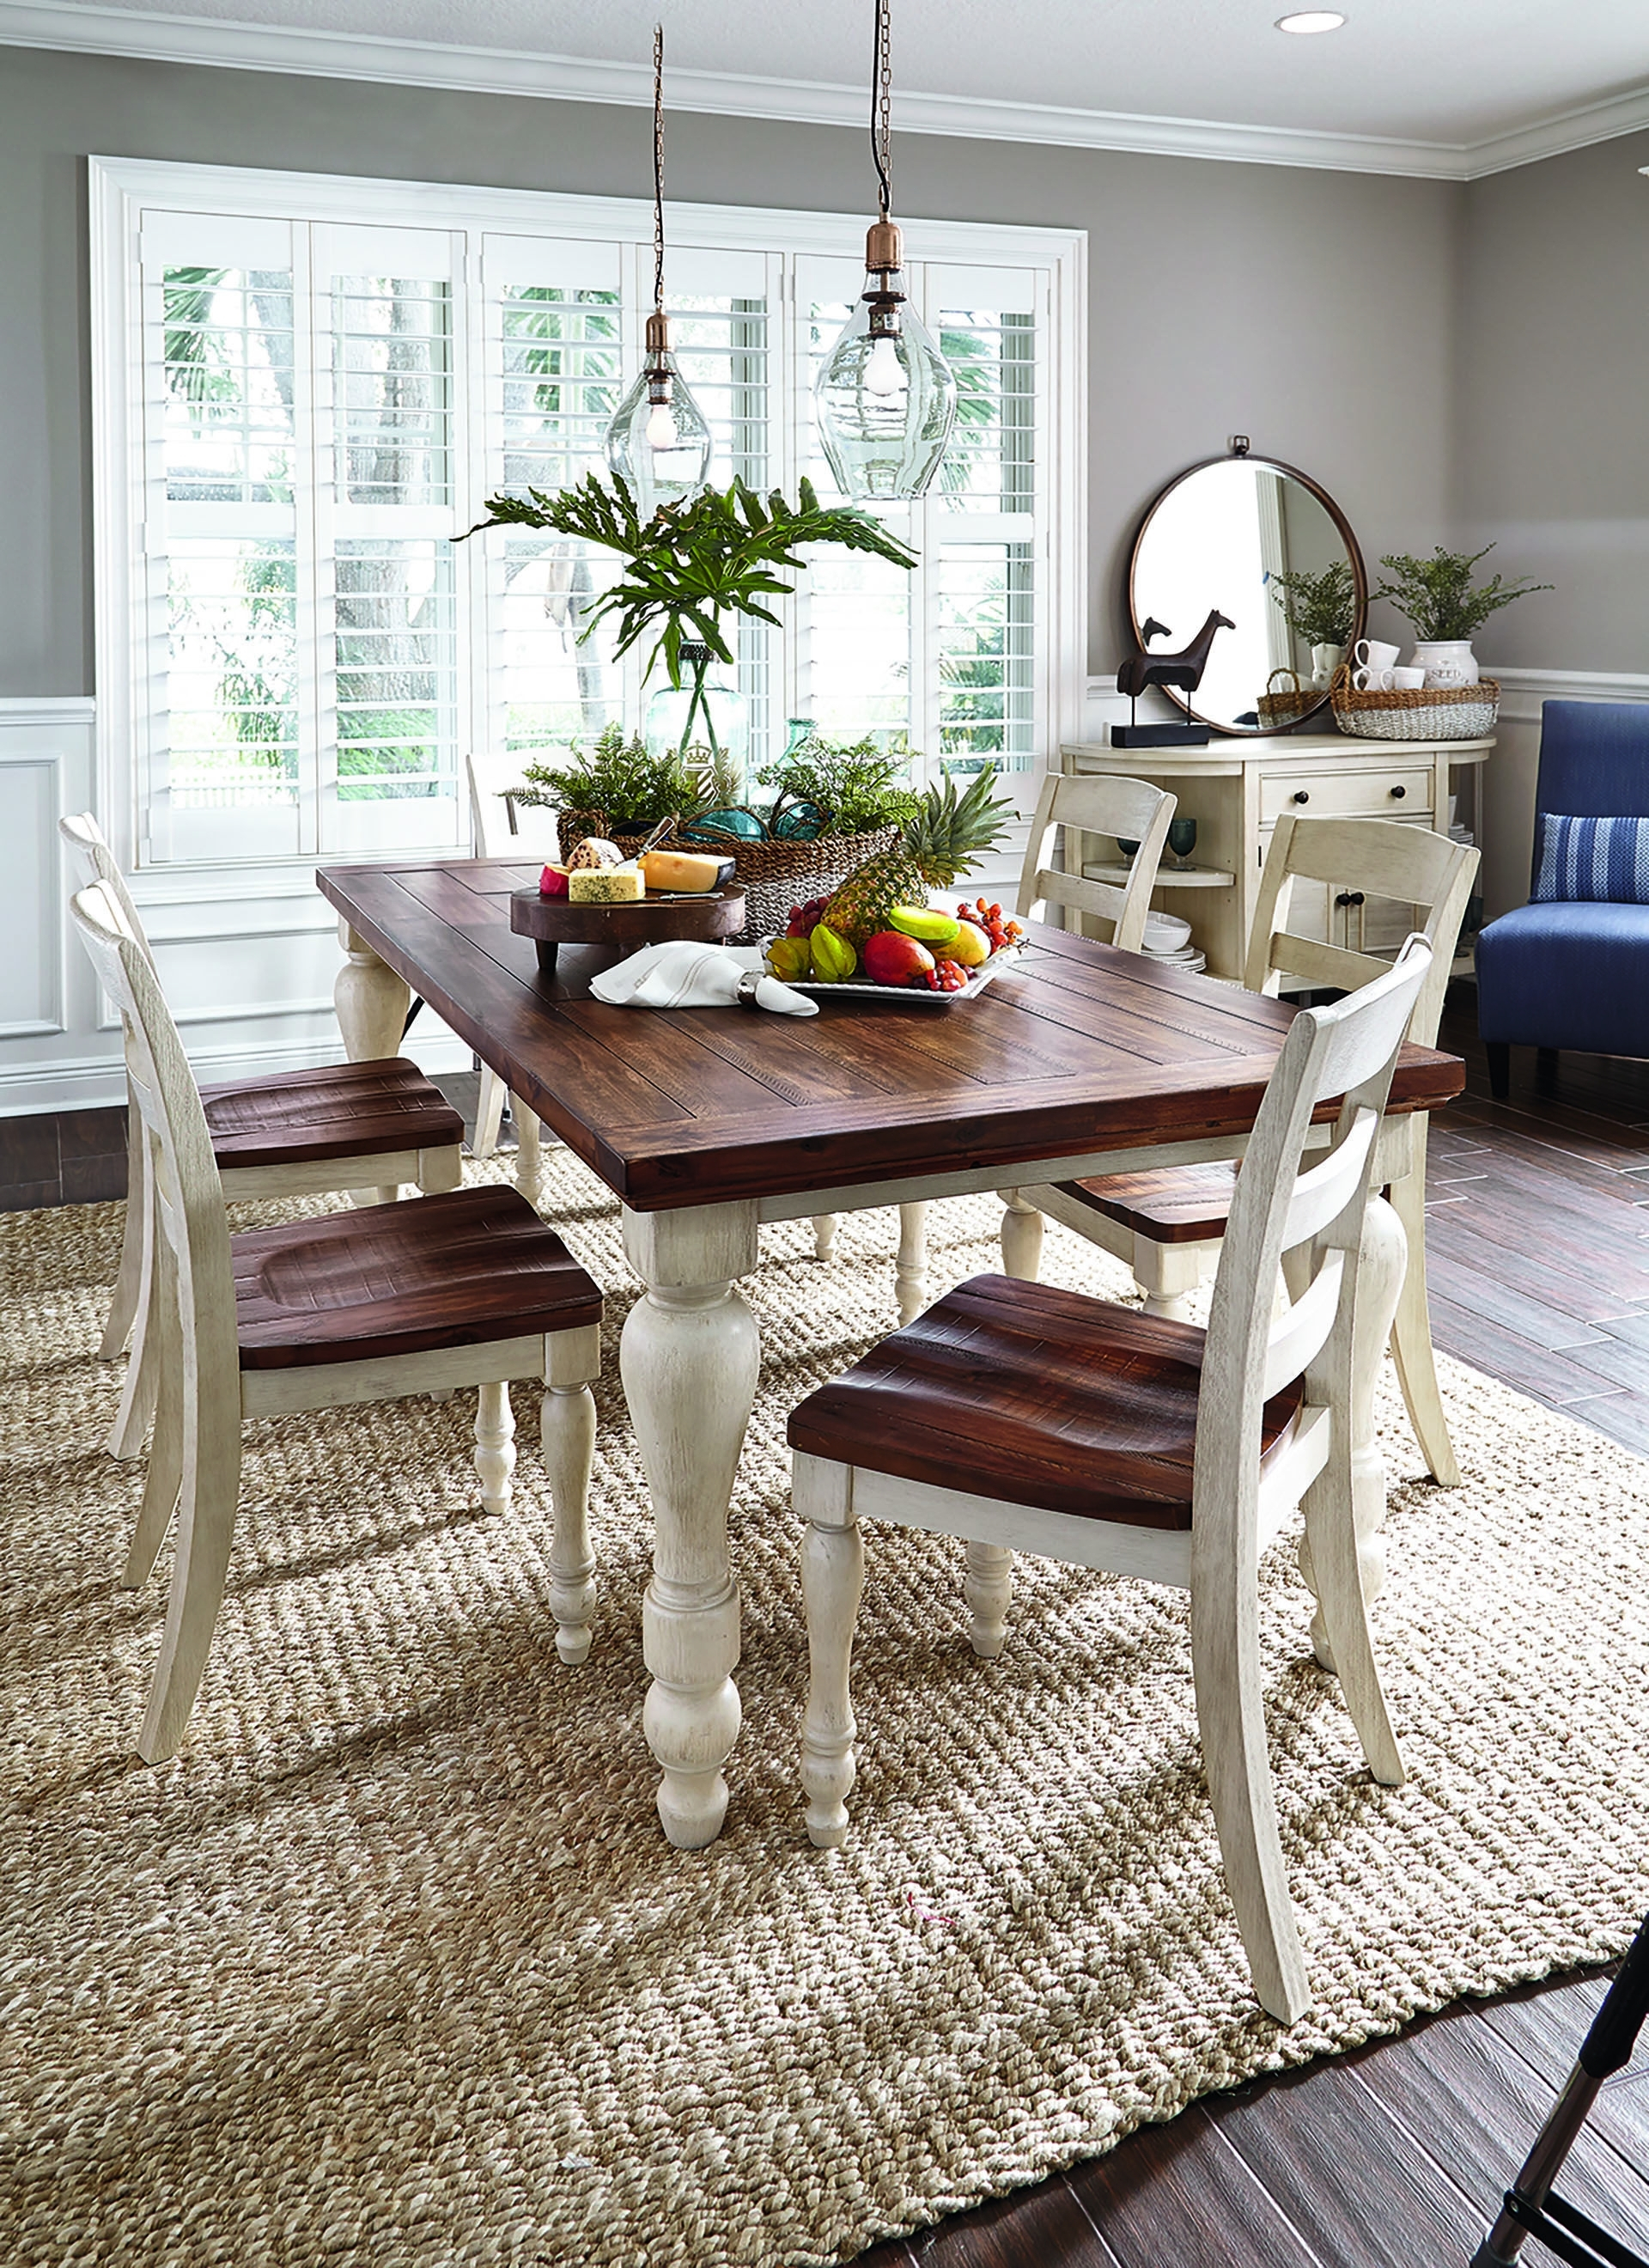 Ashley's Marsilona Dining Love The Dark And Light Wood Together In Current Laurent 7 Piece Rectangle Dining Sets With Wood Chairs (View 18 of 20)